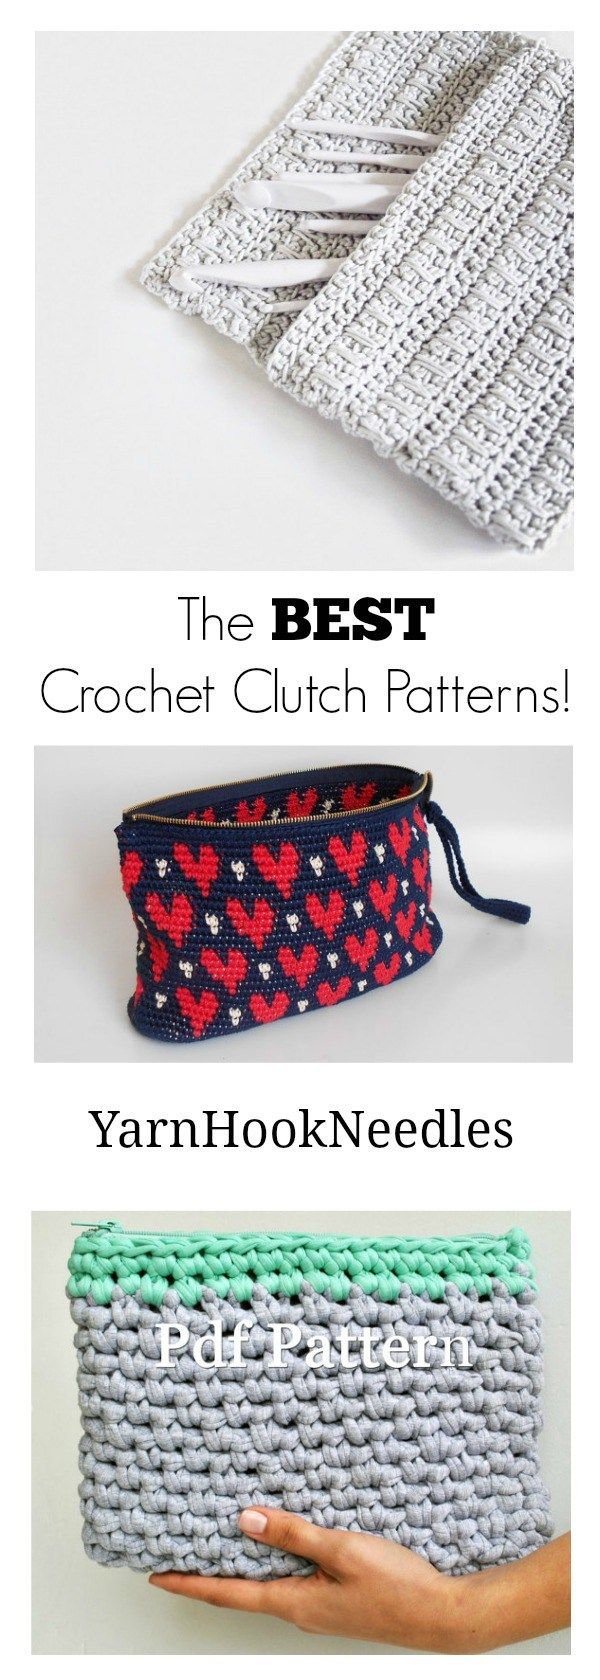 Need a quick summer crochet project? Check out this awesome roundup of crochet clutch patterns! Plus the Moss Stitch Clutch Pattern with a Video!